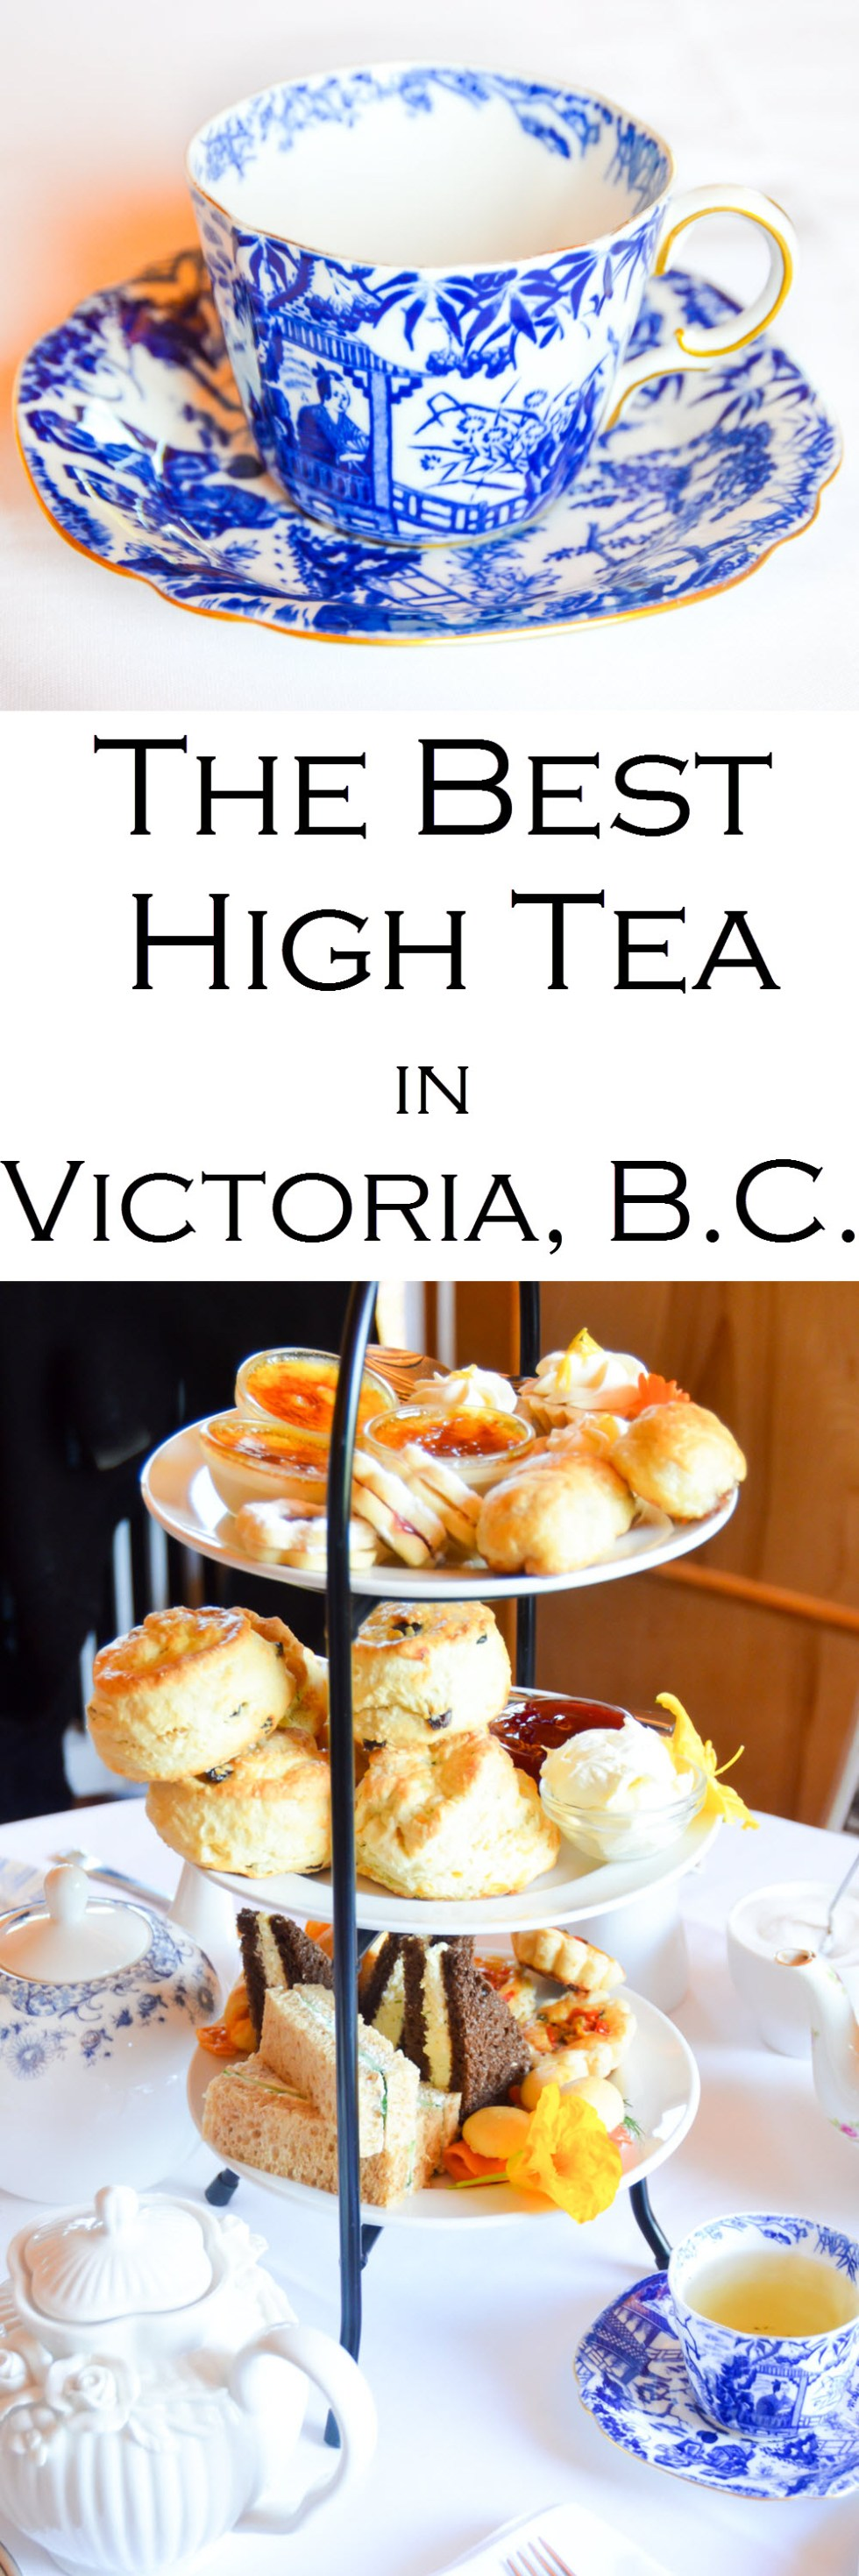 The Best High Tea in Victoria, BC - Teahouse at Abkhazi Gardens